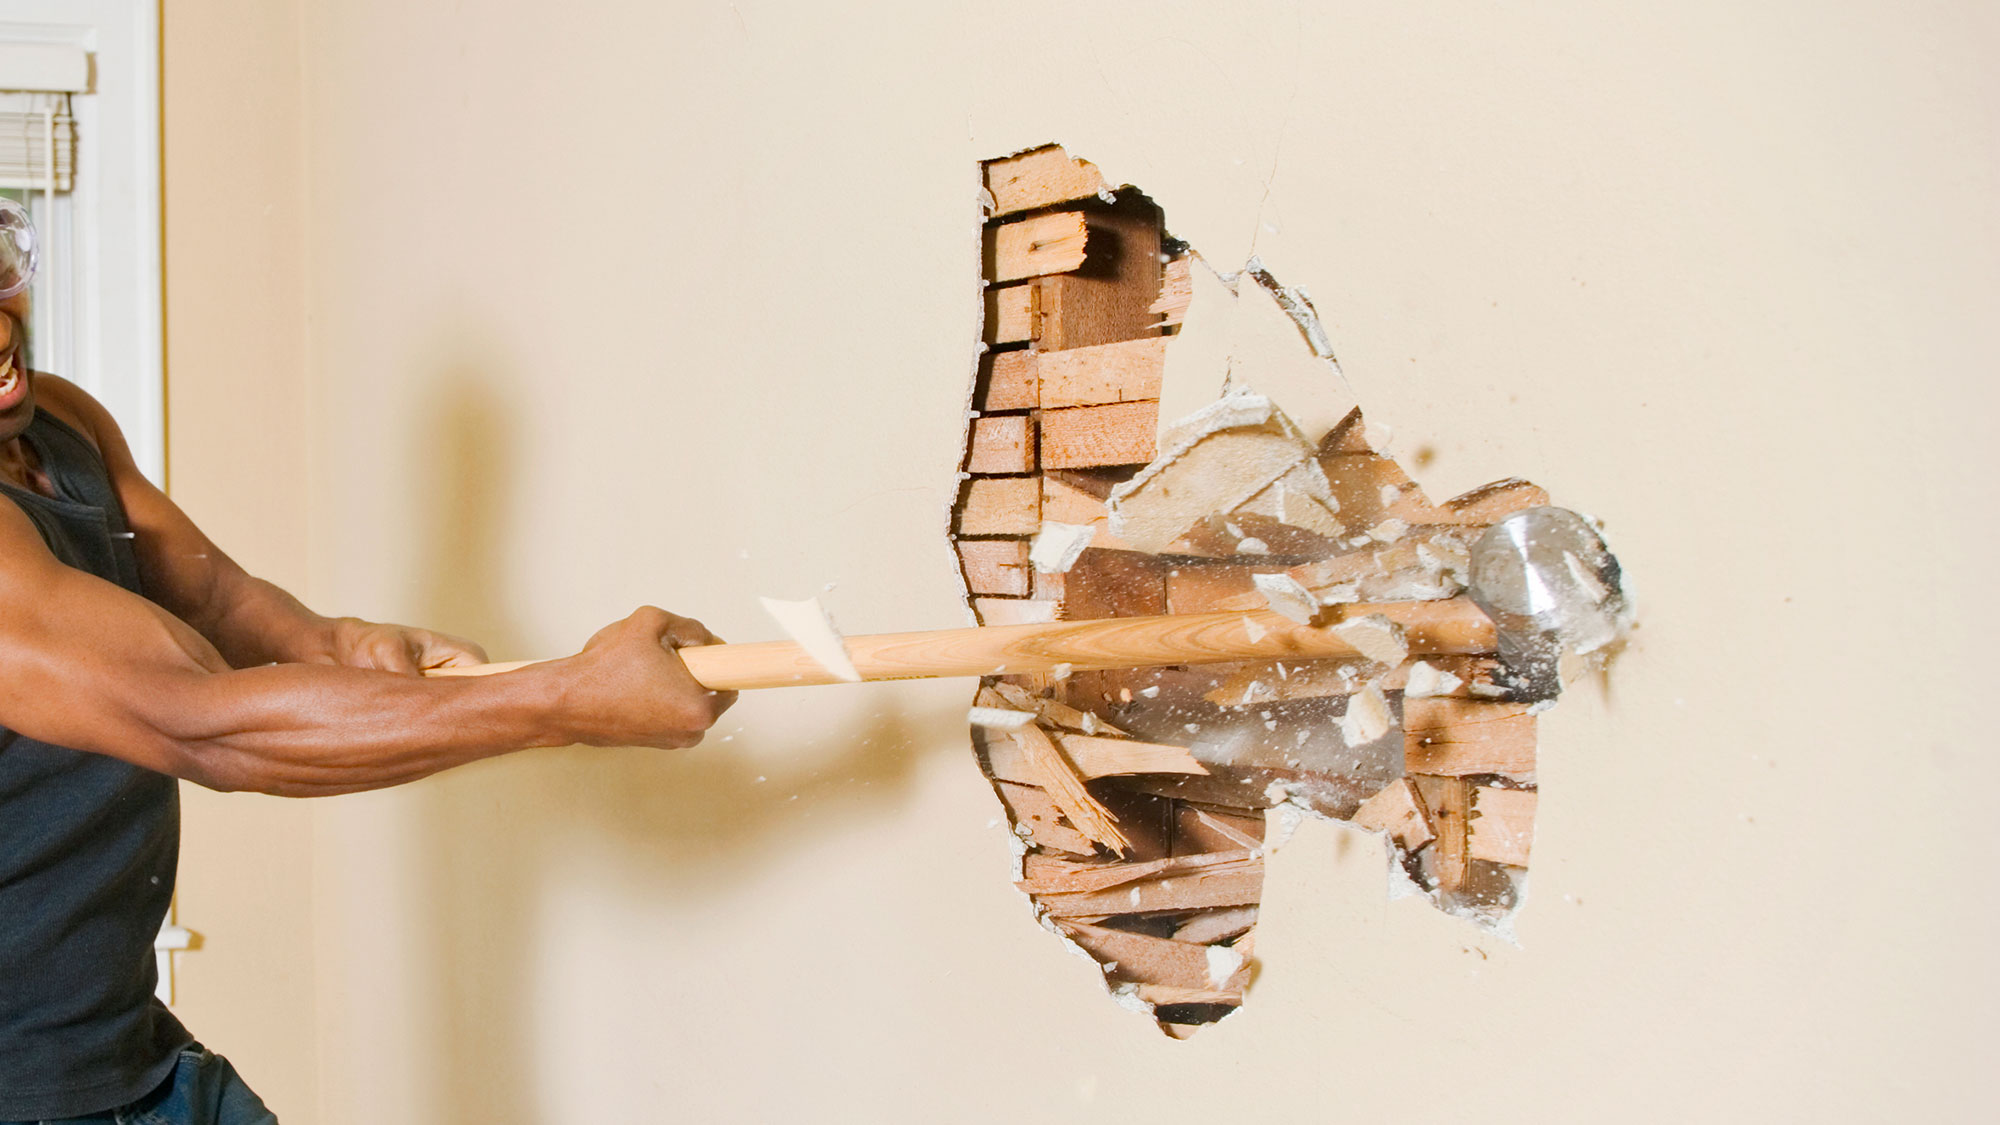 What to do before demolishing a wall of your house